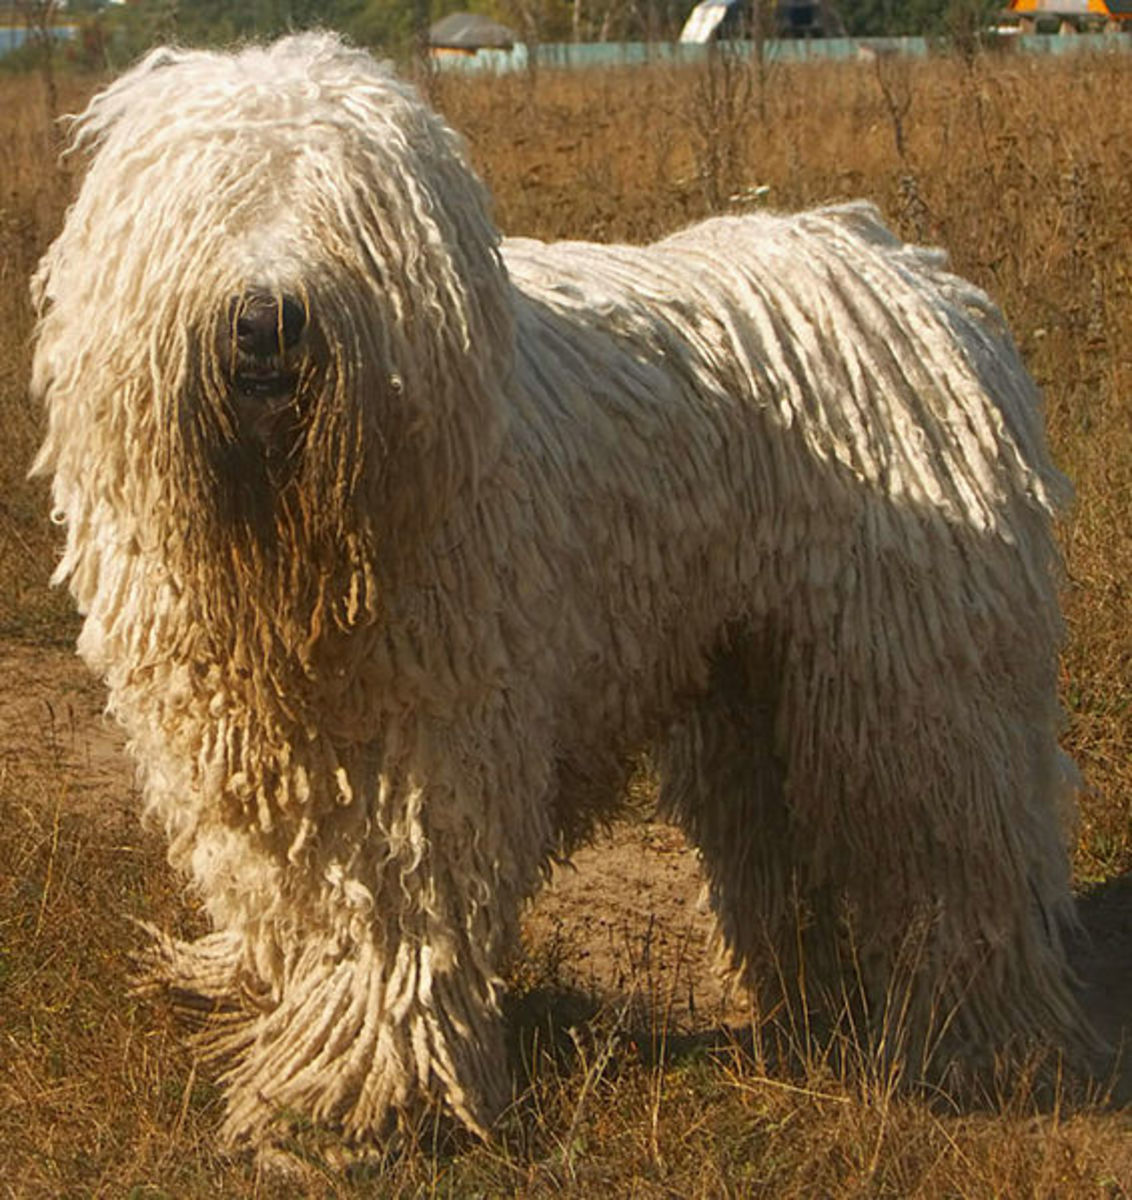 The corded coat of the Komondor may have been selected to prevent wolves from biting him.